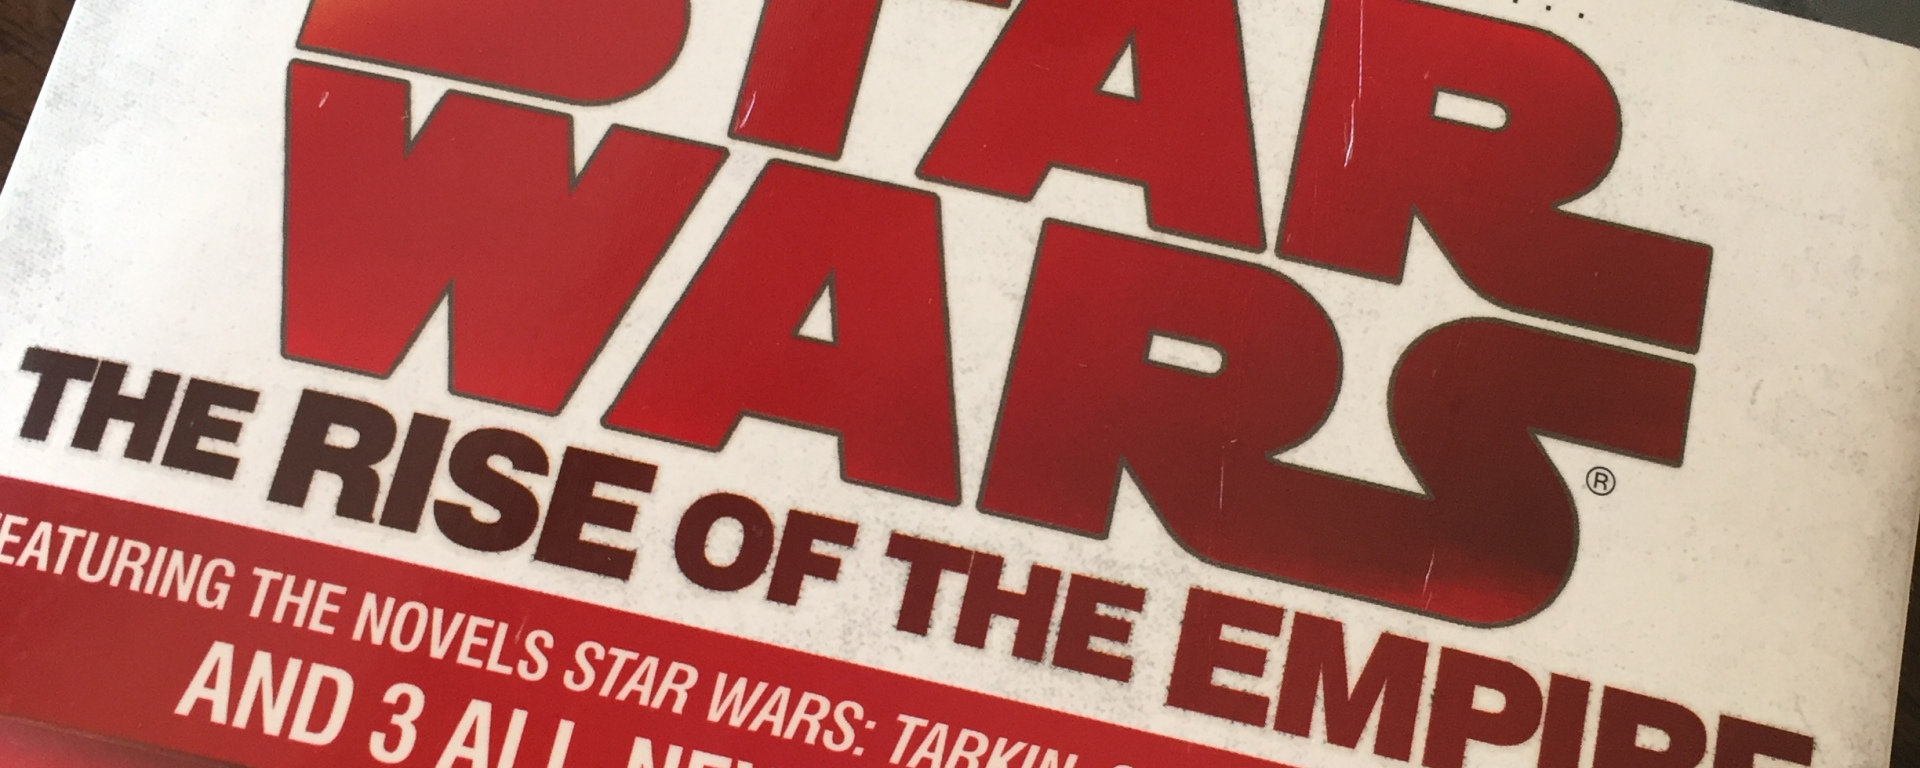 Star Wars The Rise Of The Empire Spoiler Free Book Review Disney Nerds